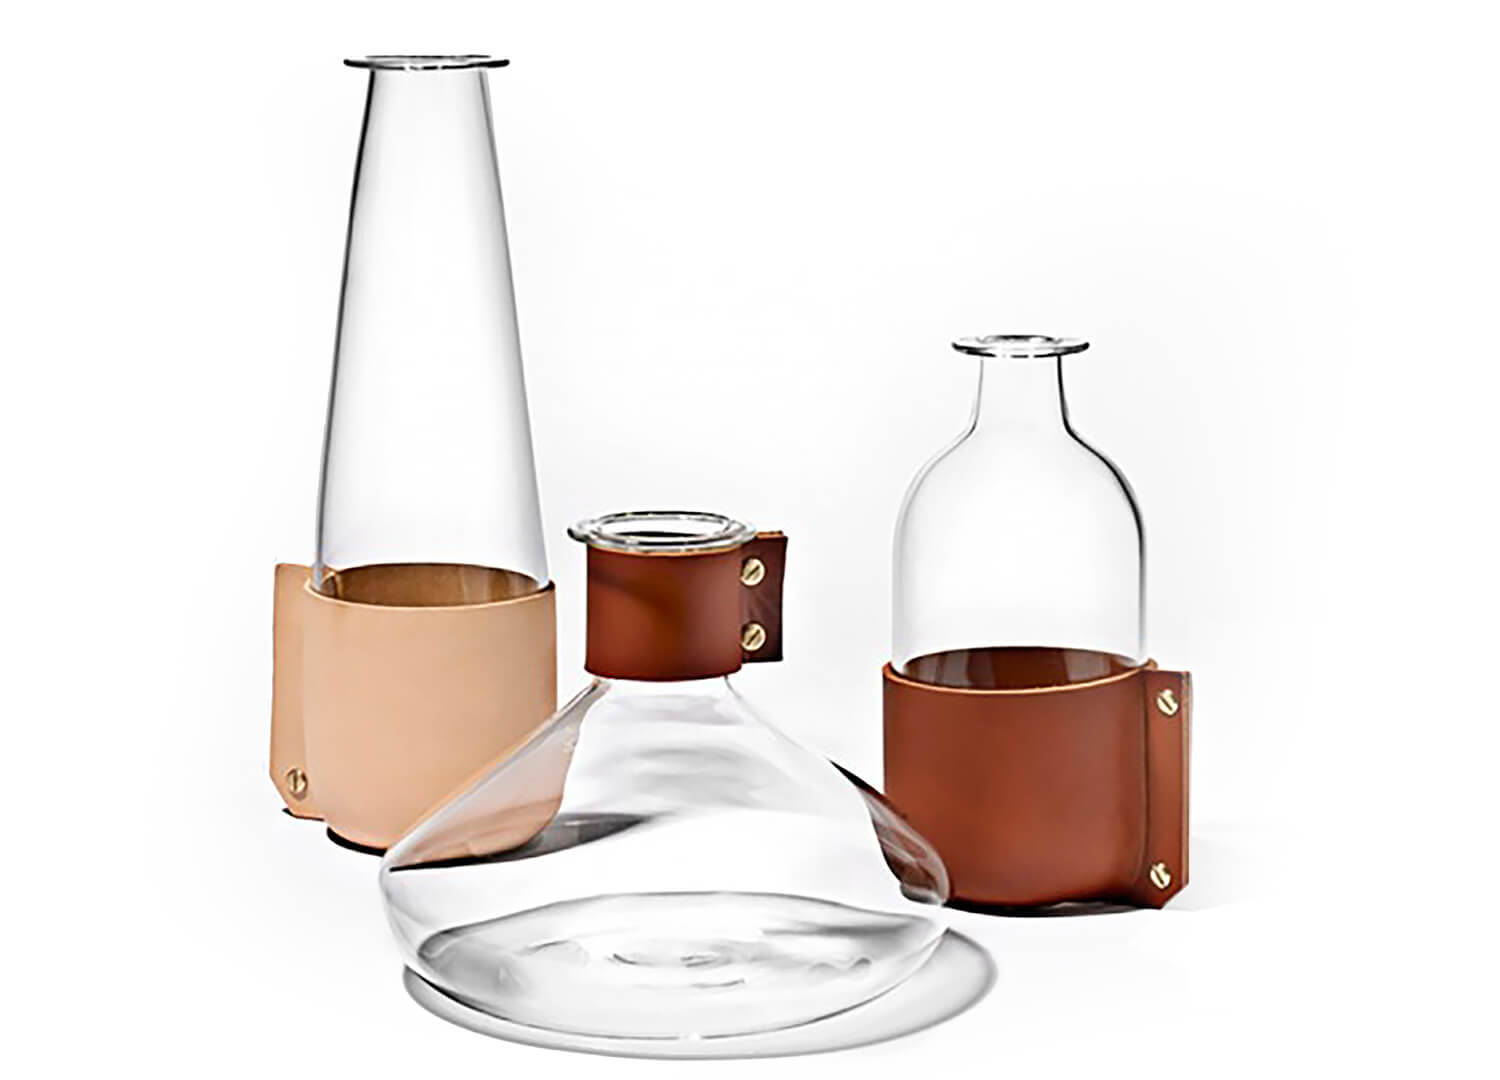 est-living-strapped-design-covet-simon-hasan-wrap-glassware-1024x544